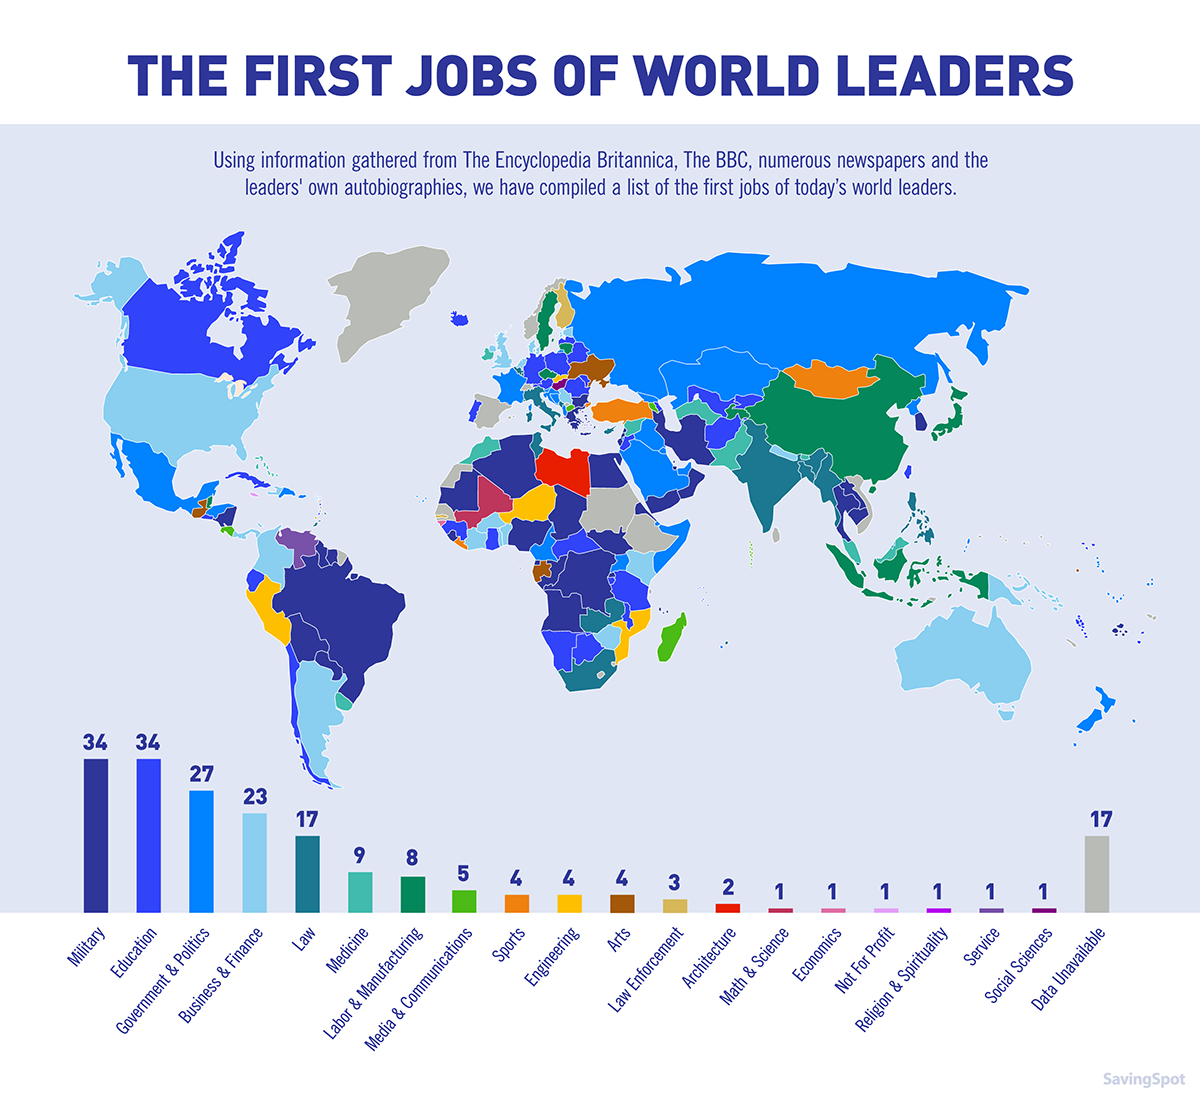 The first jobs of the world's leaders